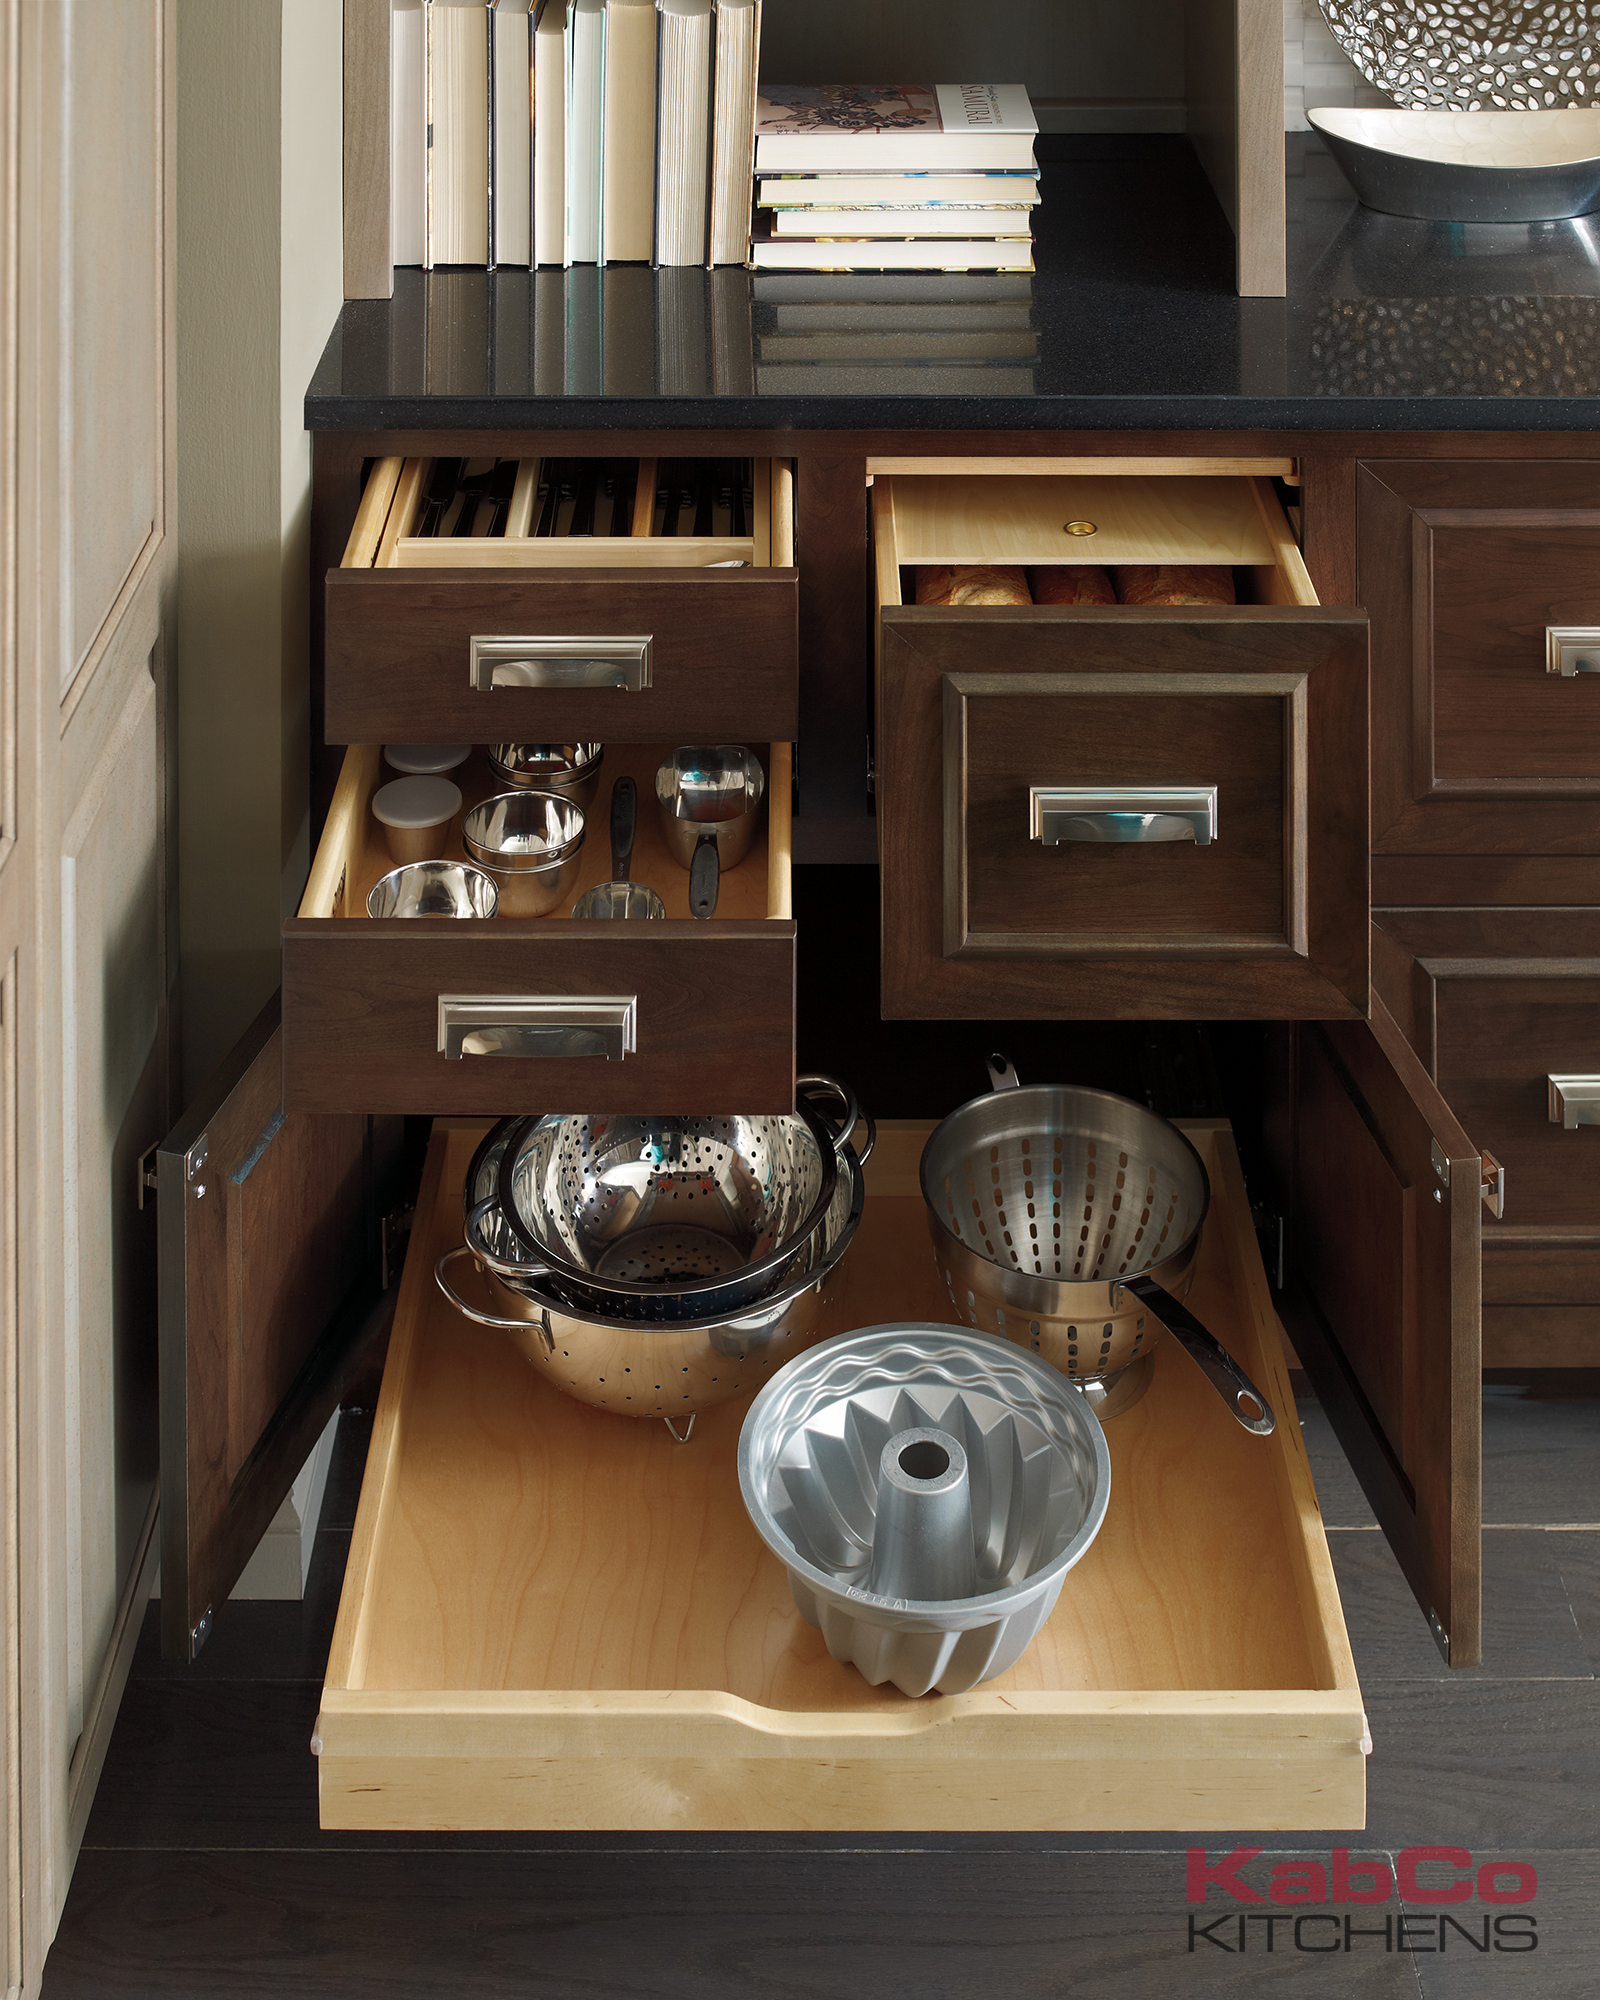 Kitchen Cabinet Accessories Pull Out: Cabinet Accessories & Storage Solutions